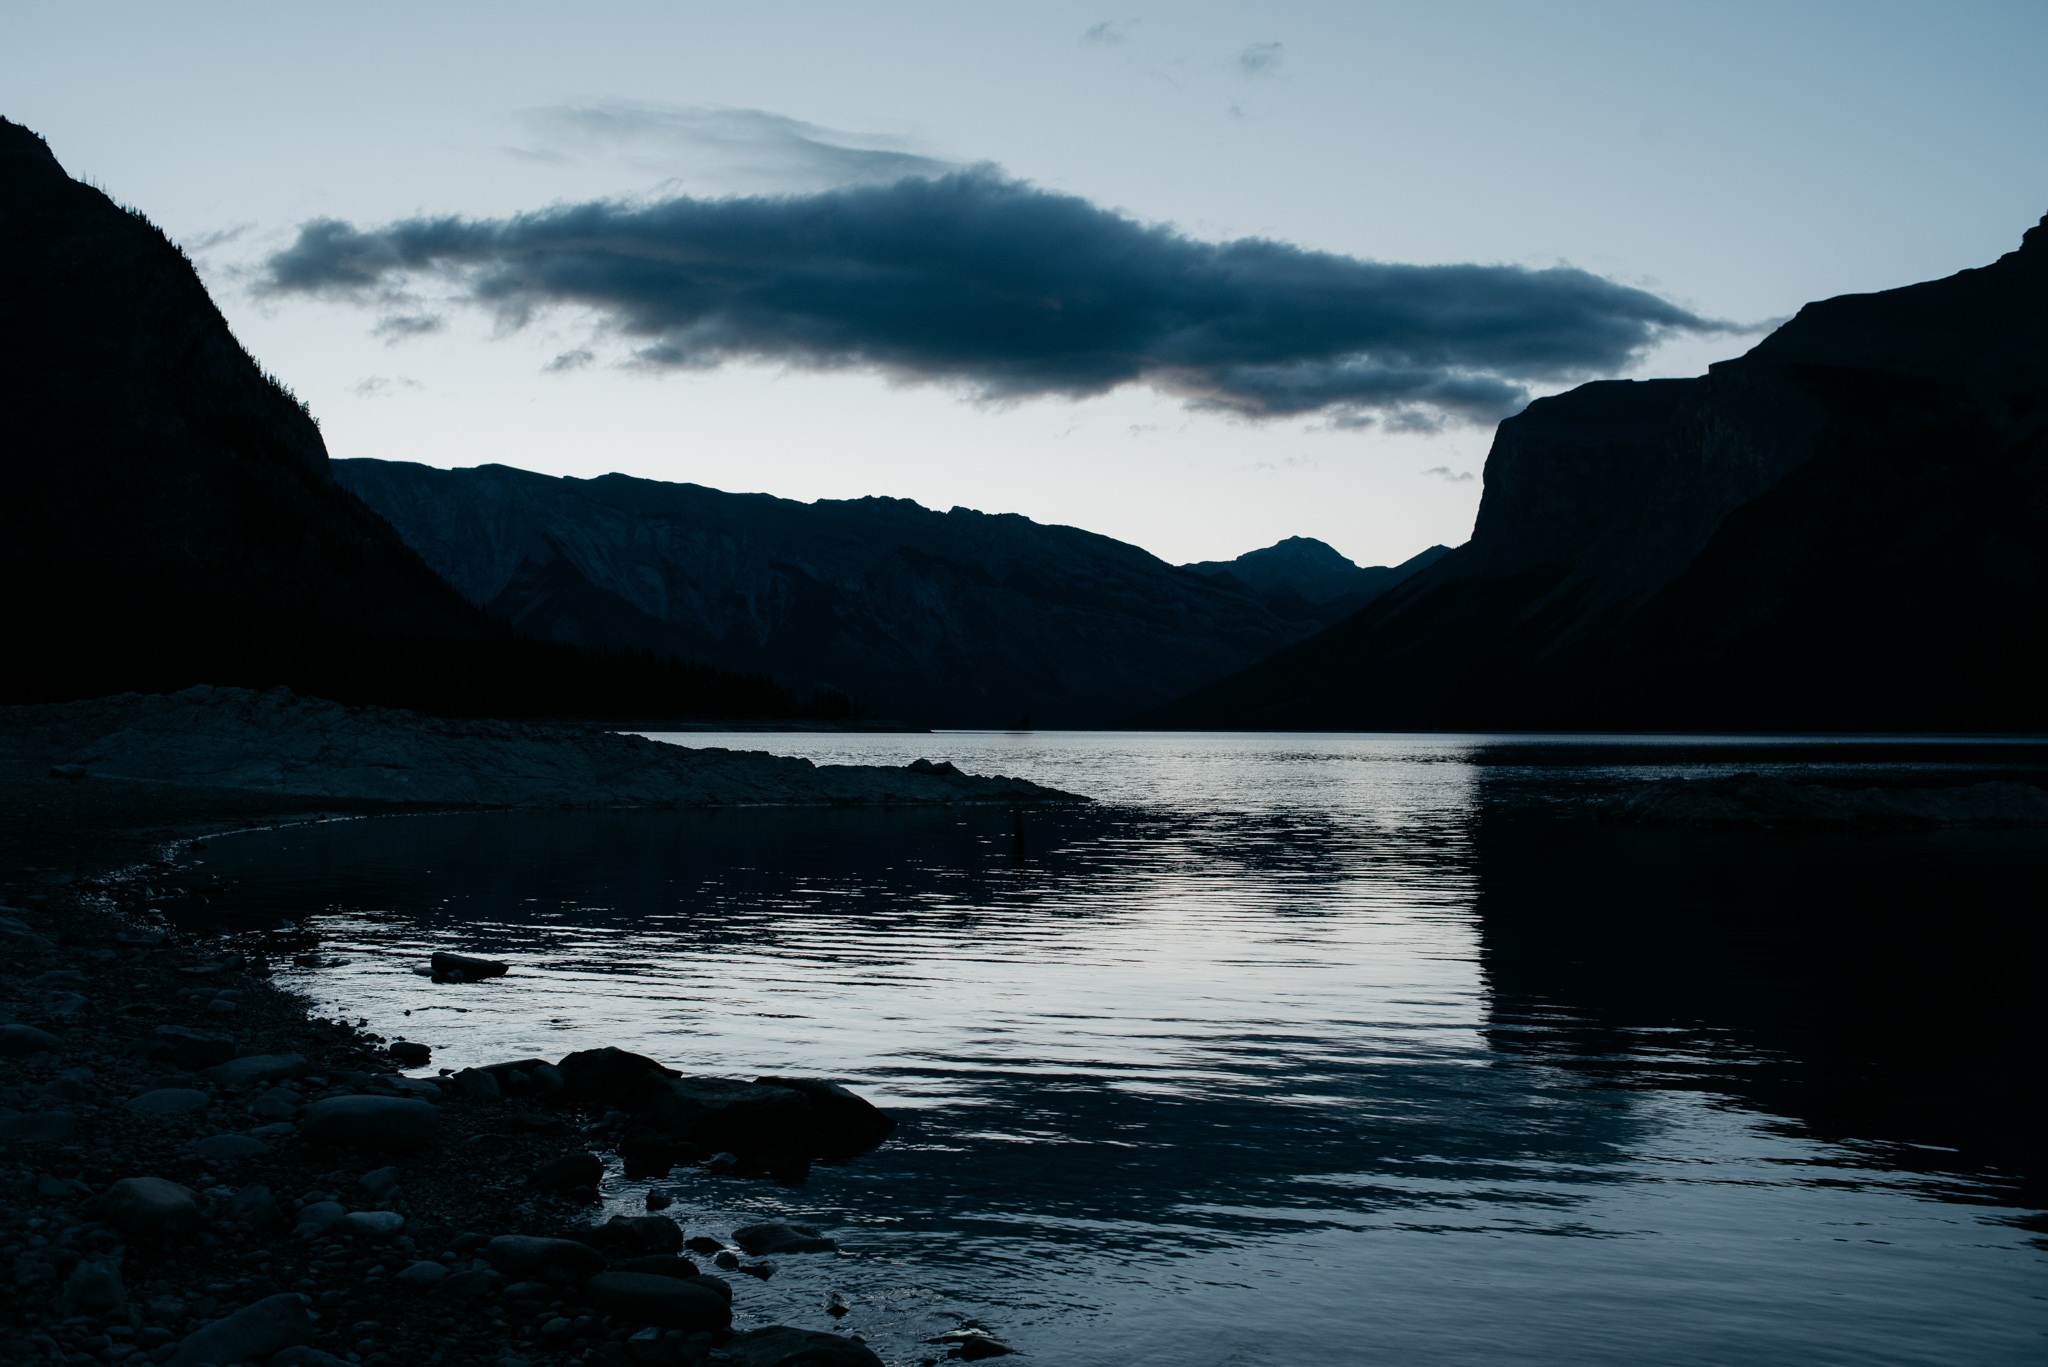 Sunrise at Lake Minnewanka in Banff National Park // Daring Wanderer: www.daringwanderer.com